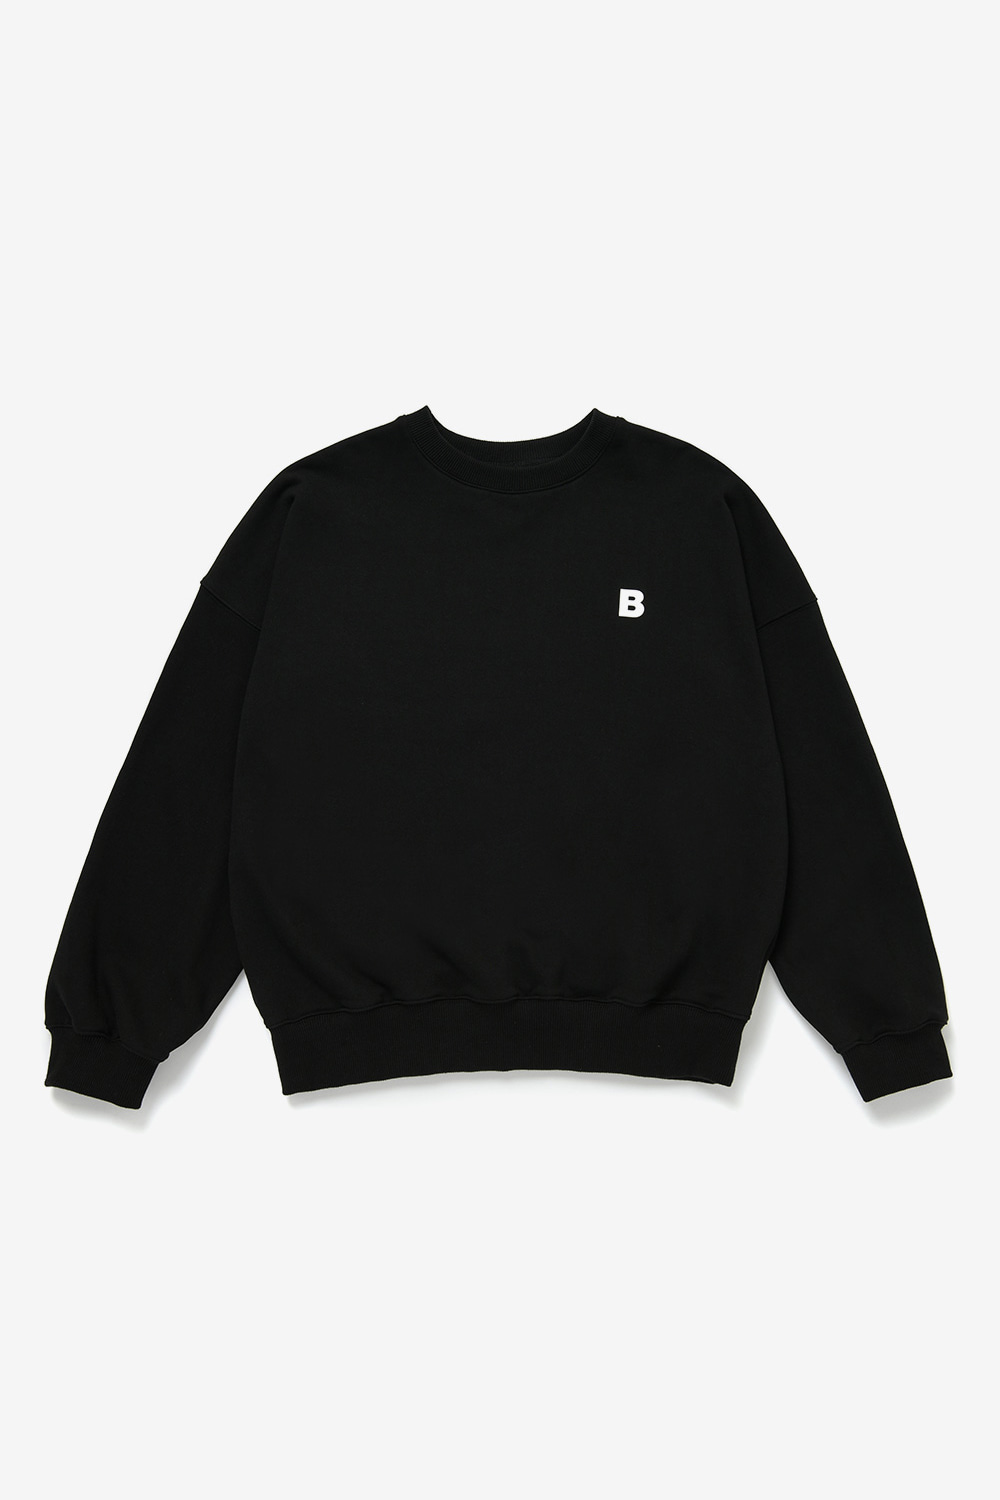 B Logo Over MTM(unisex)_Dark Grey BS0SMT207DY00F